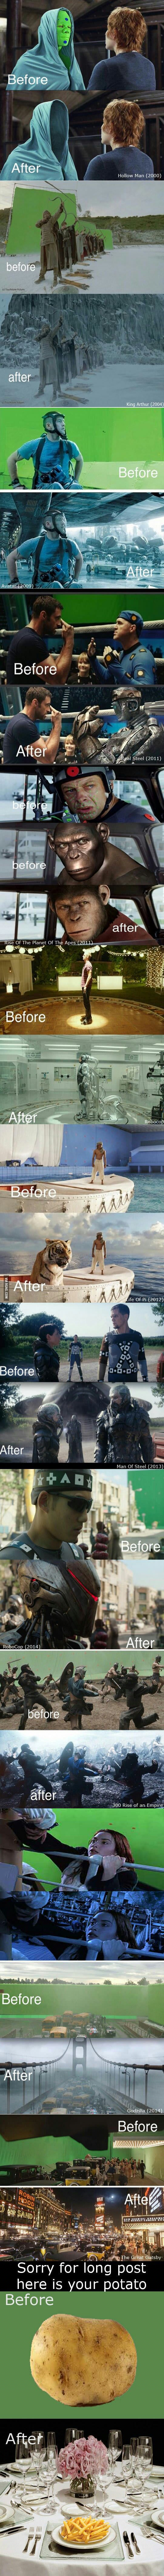 Before and after effect images for fellow 9gaggers...